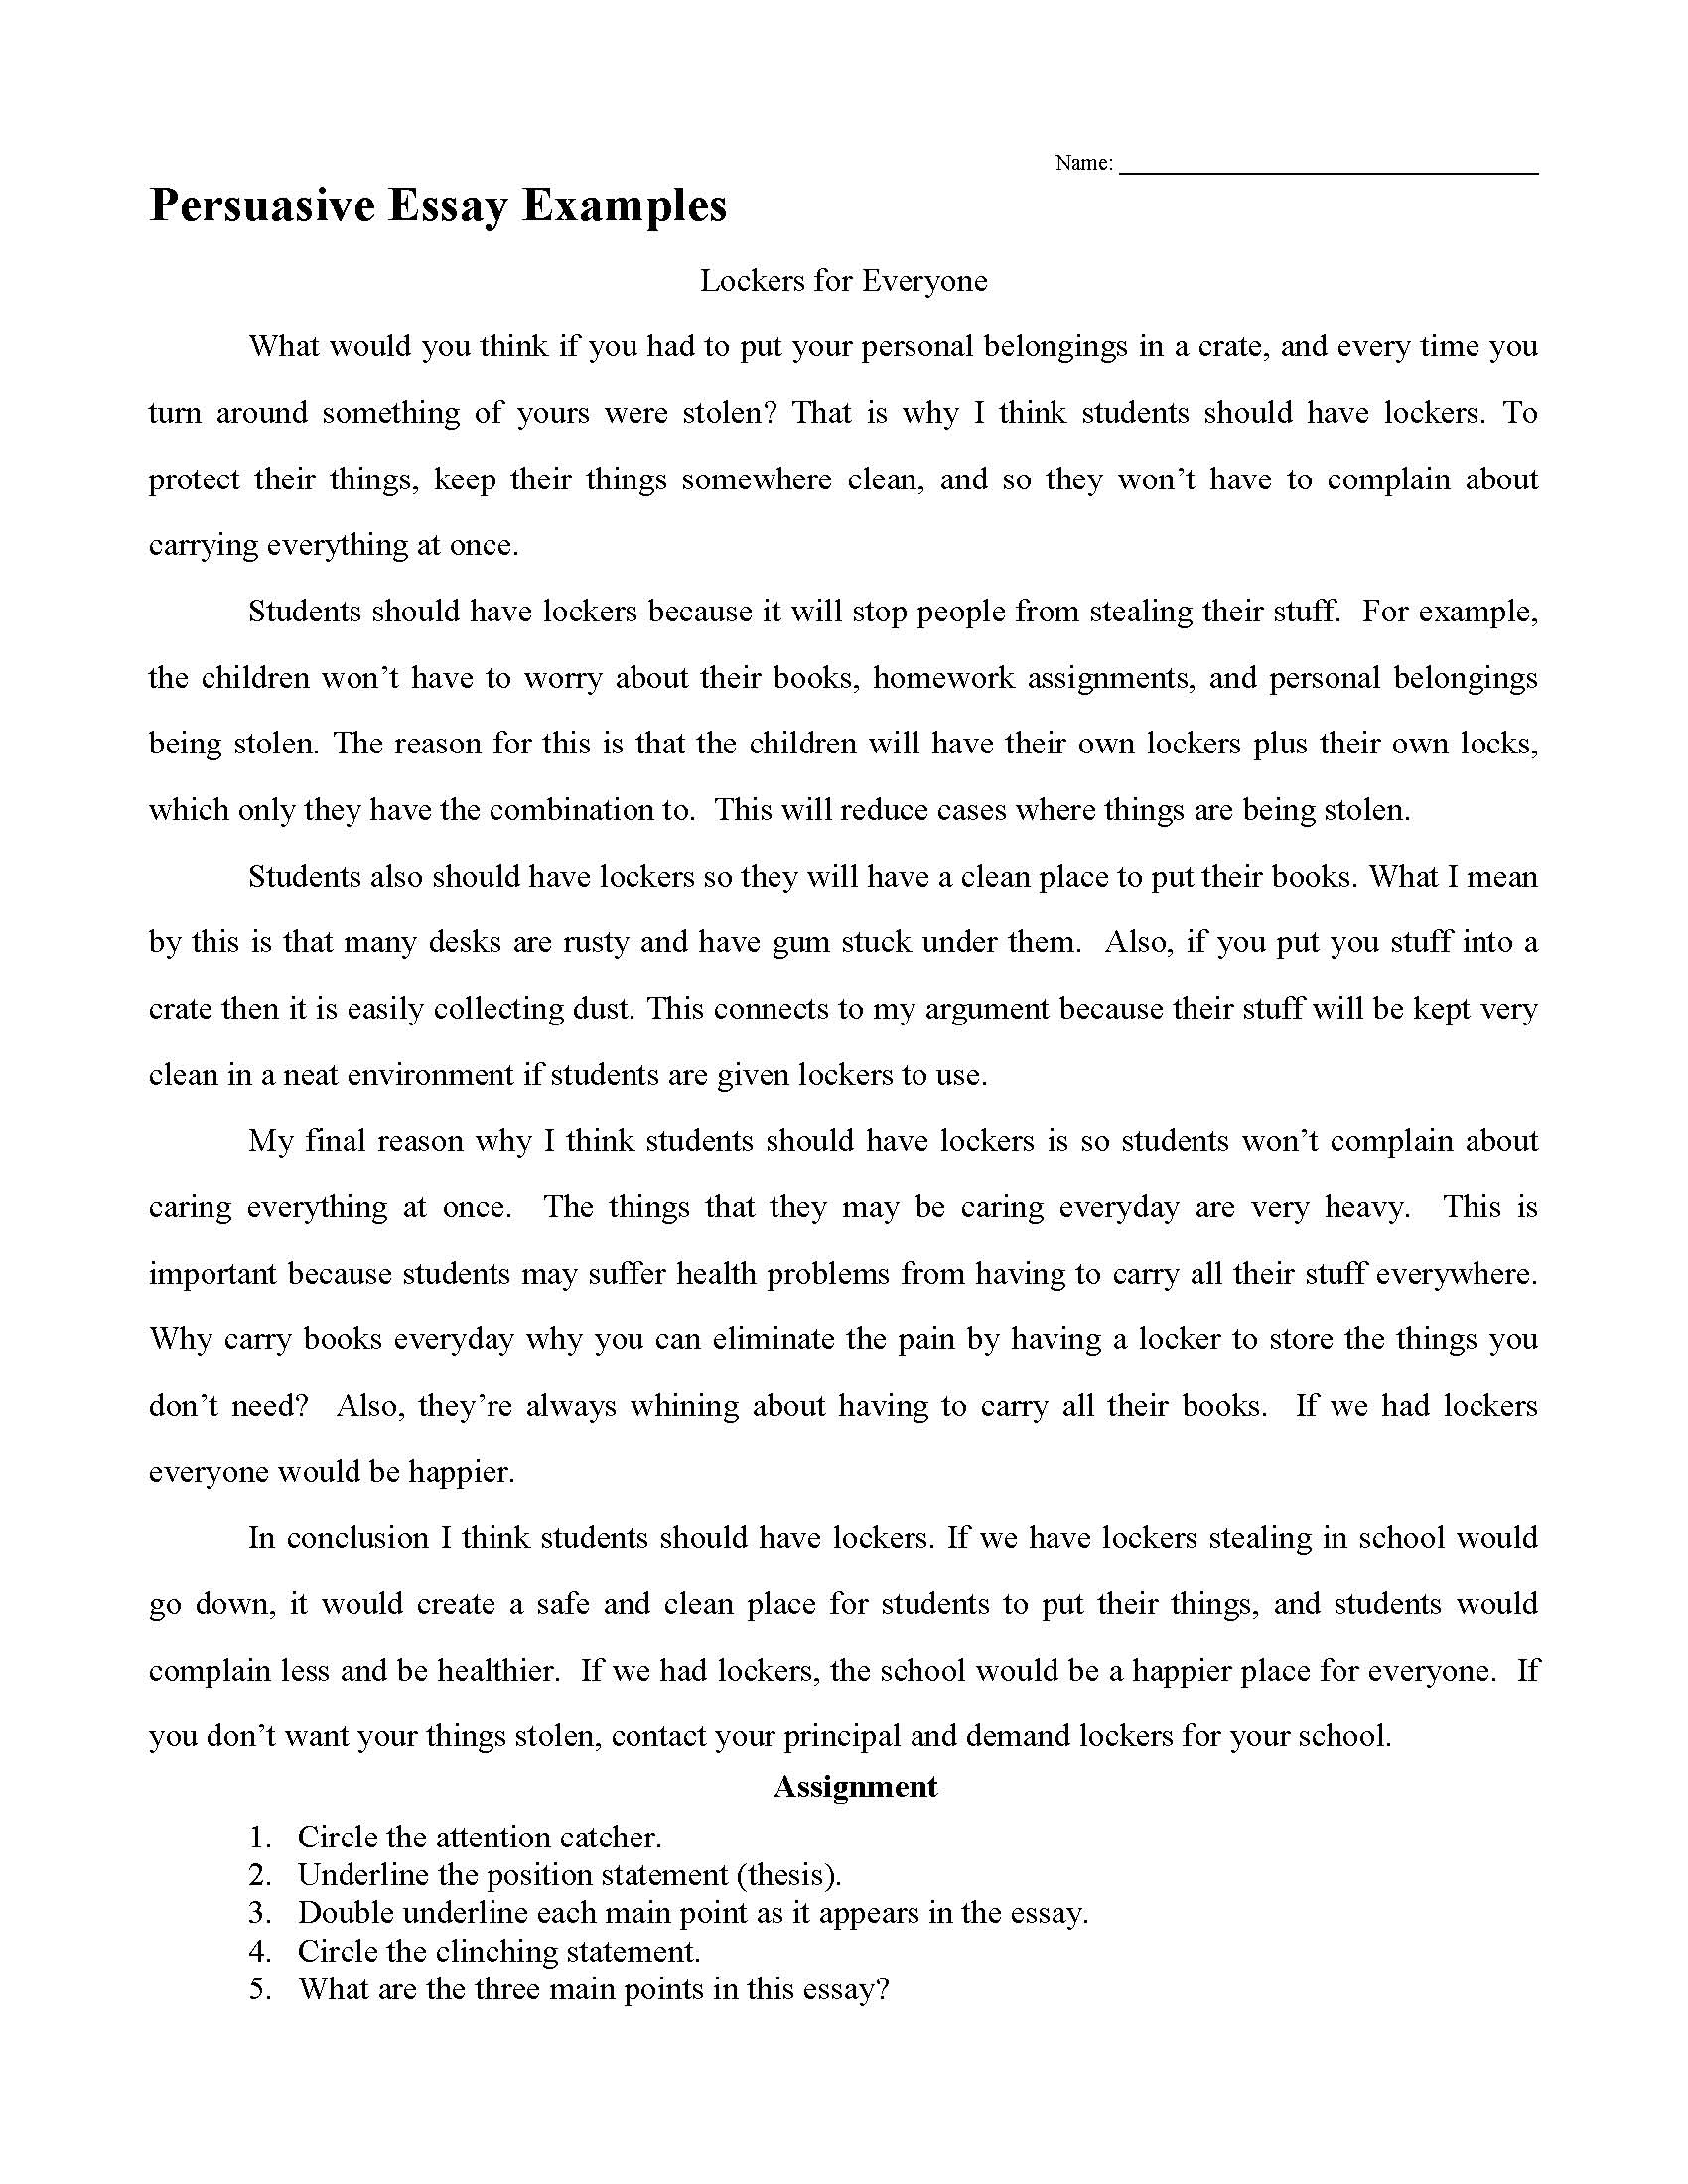 005 Persuasive Essay Examples Good Research Paper Topics Medical Unique Field Related Papers Full